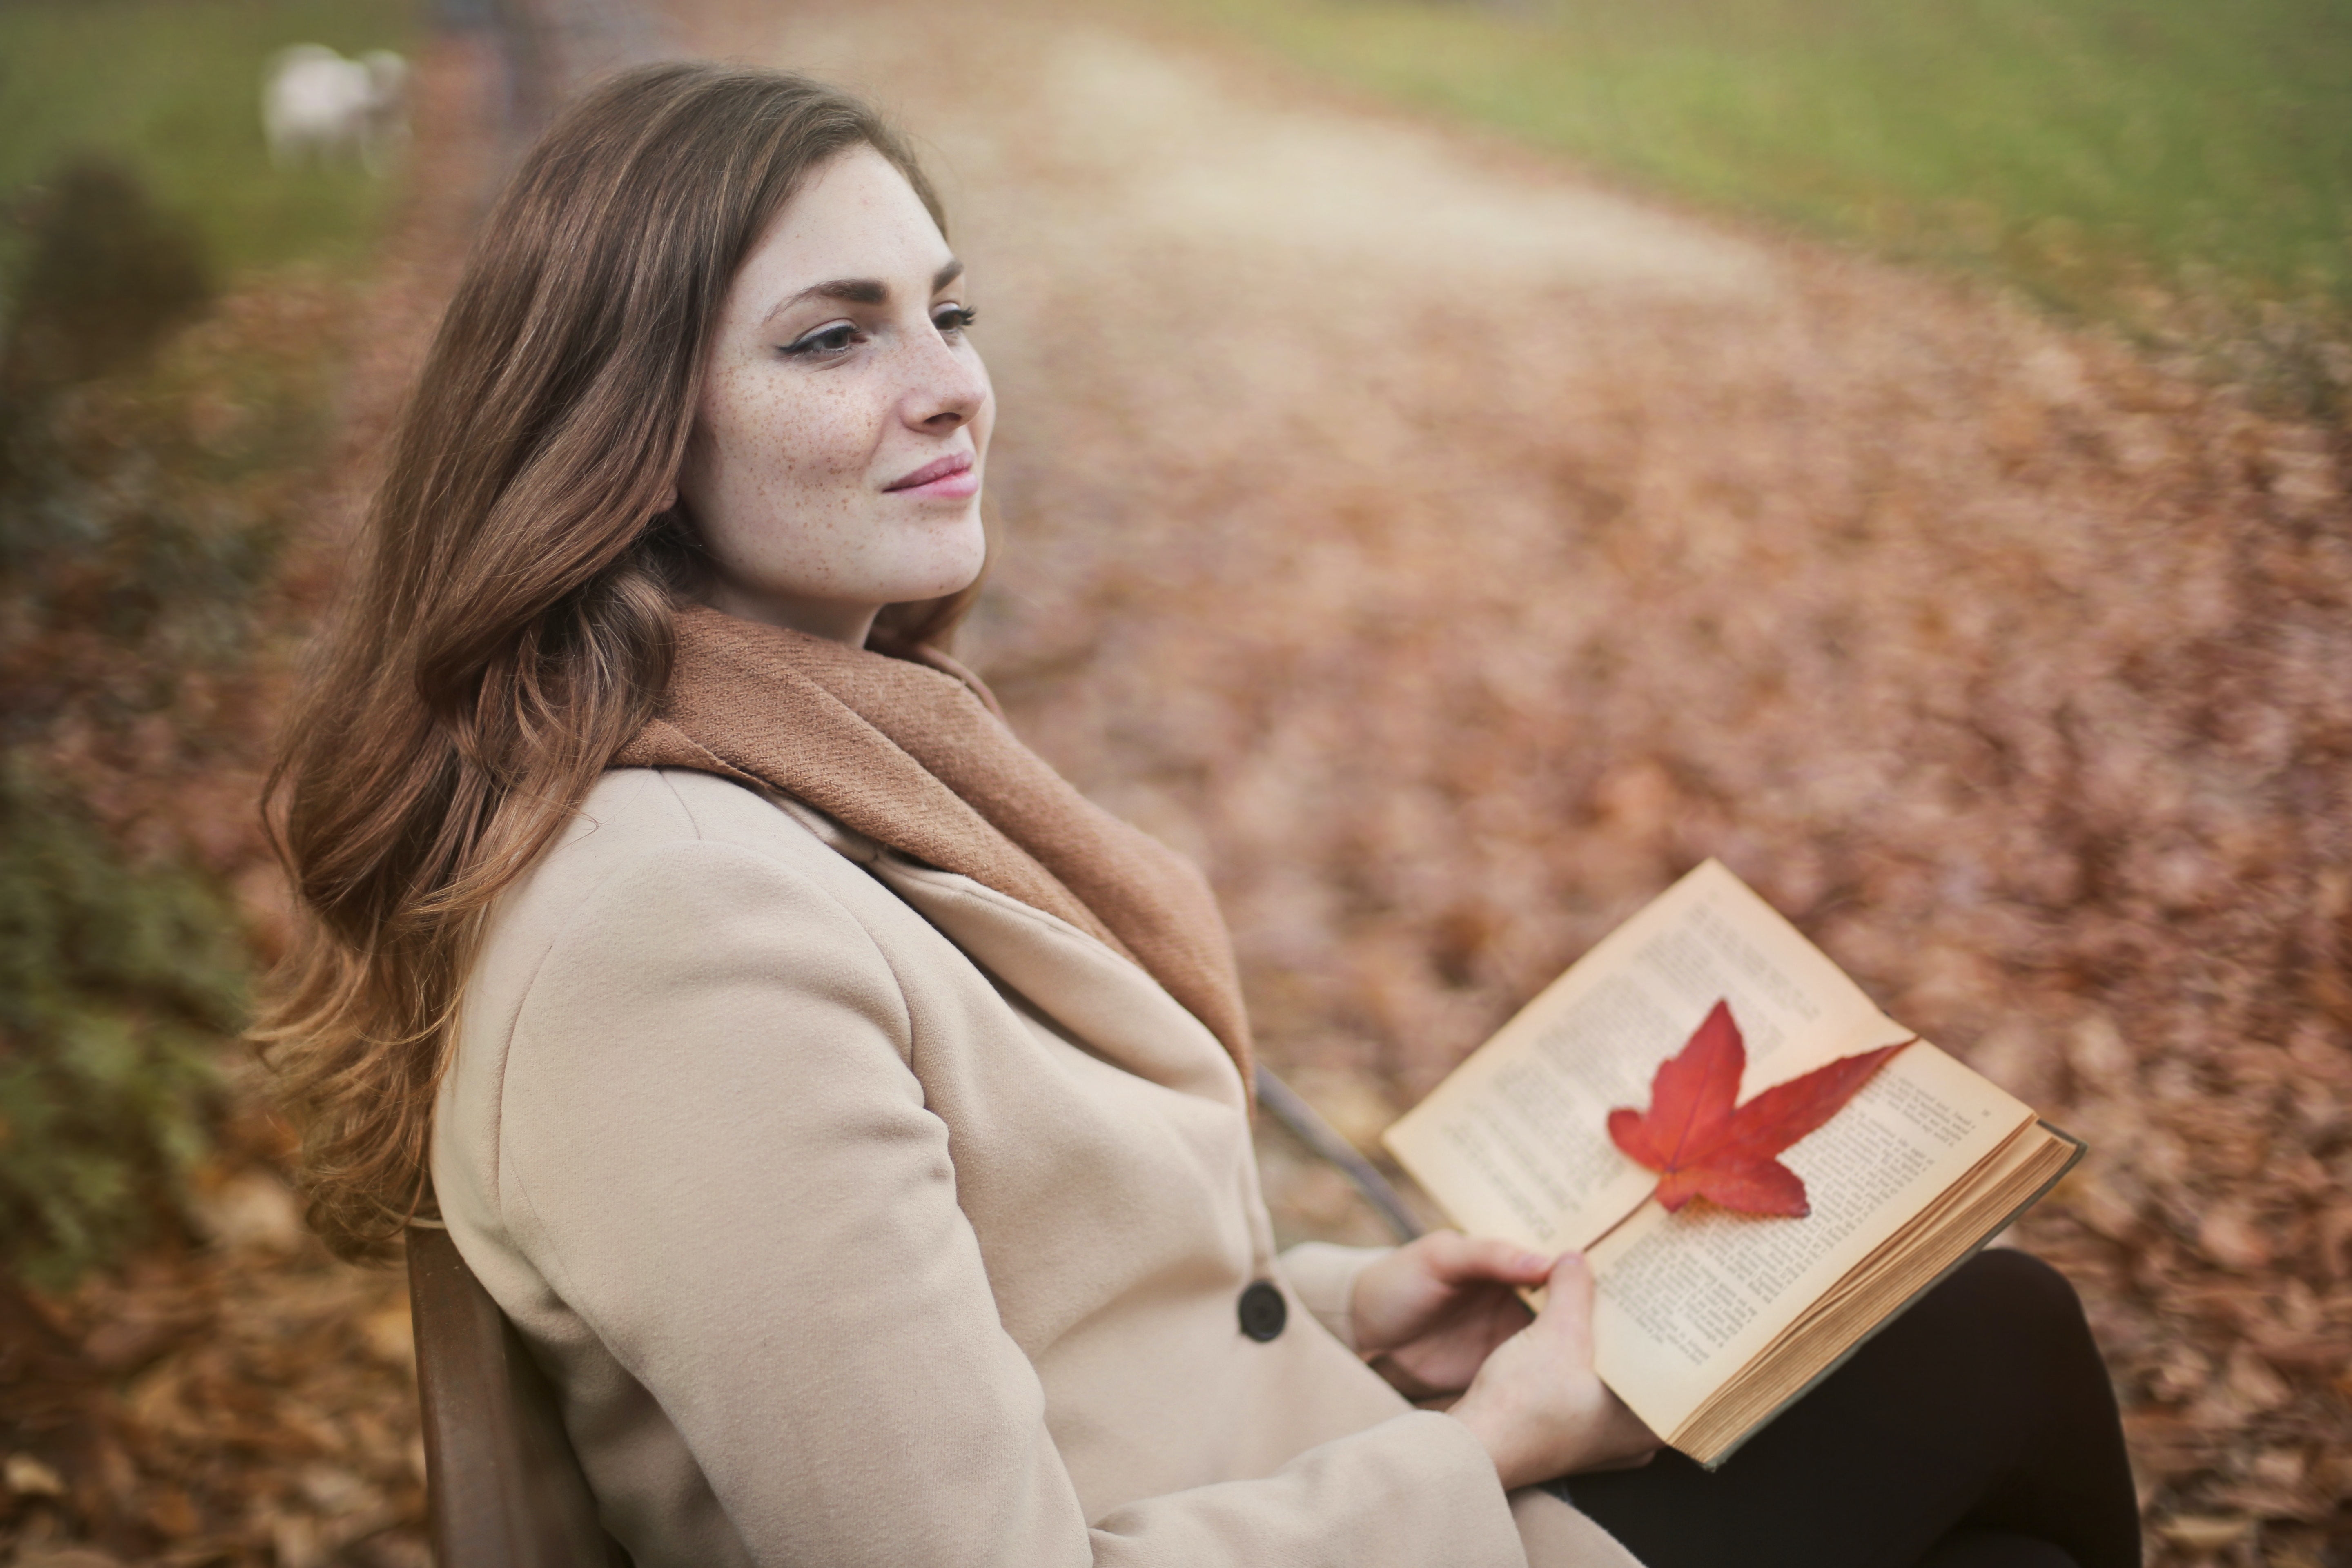 Maintaining positive thoughts can encourage students to learn better